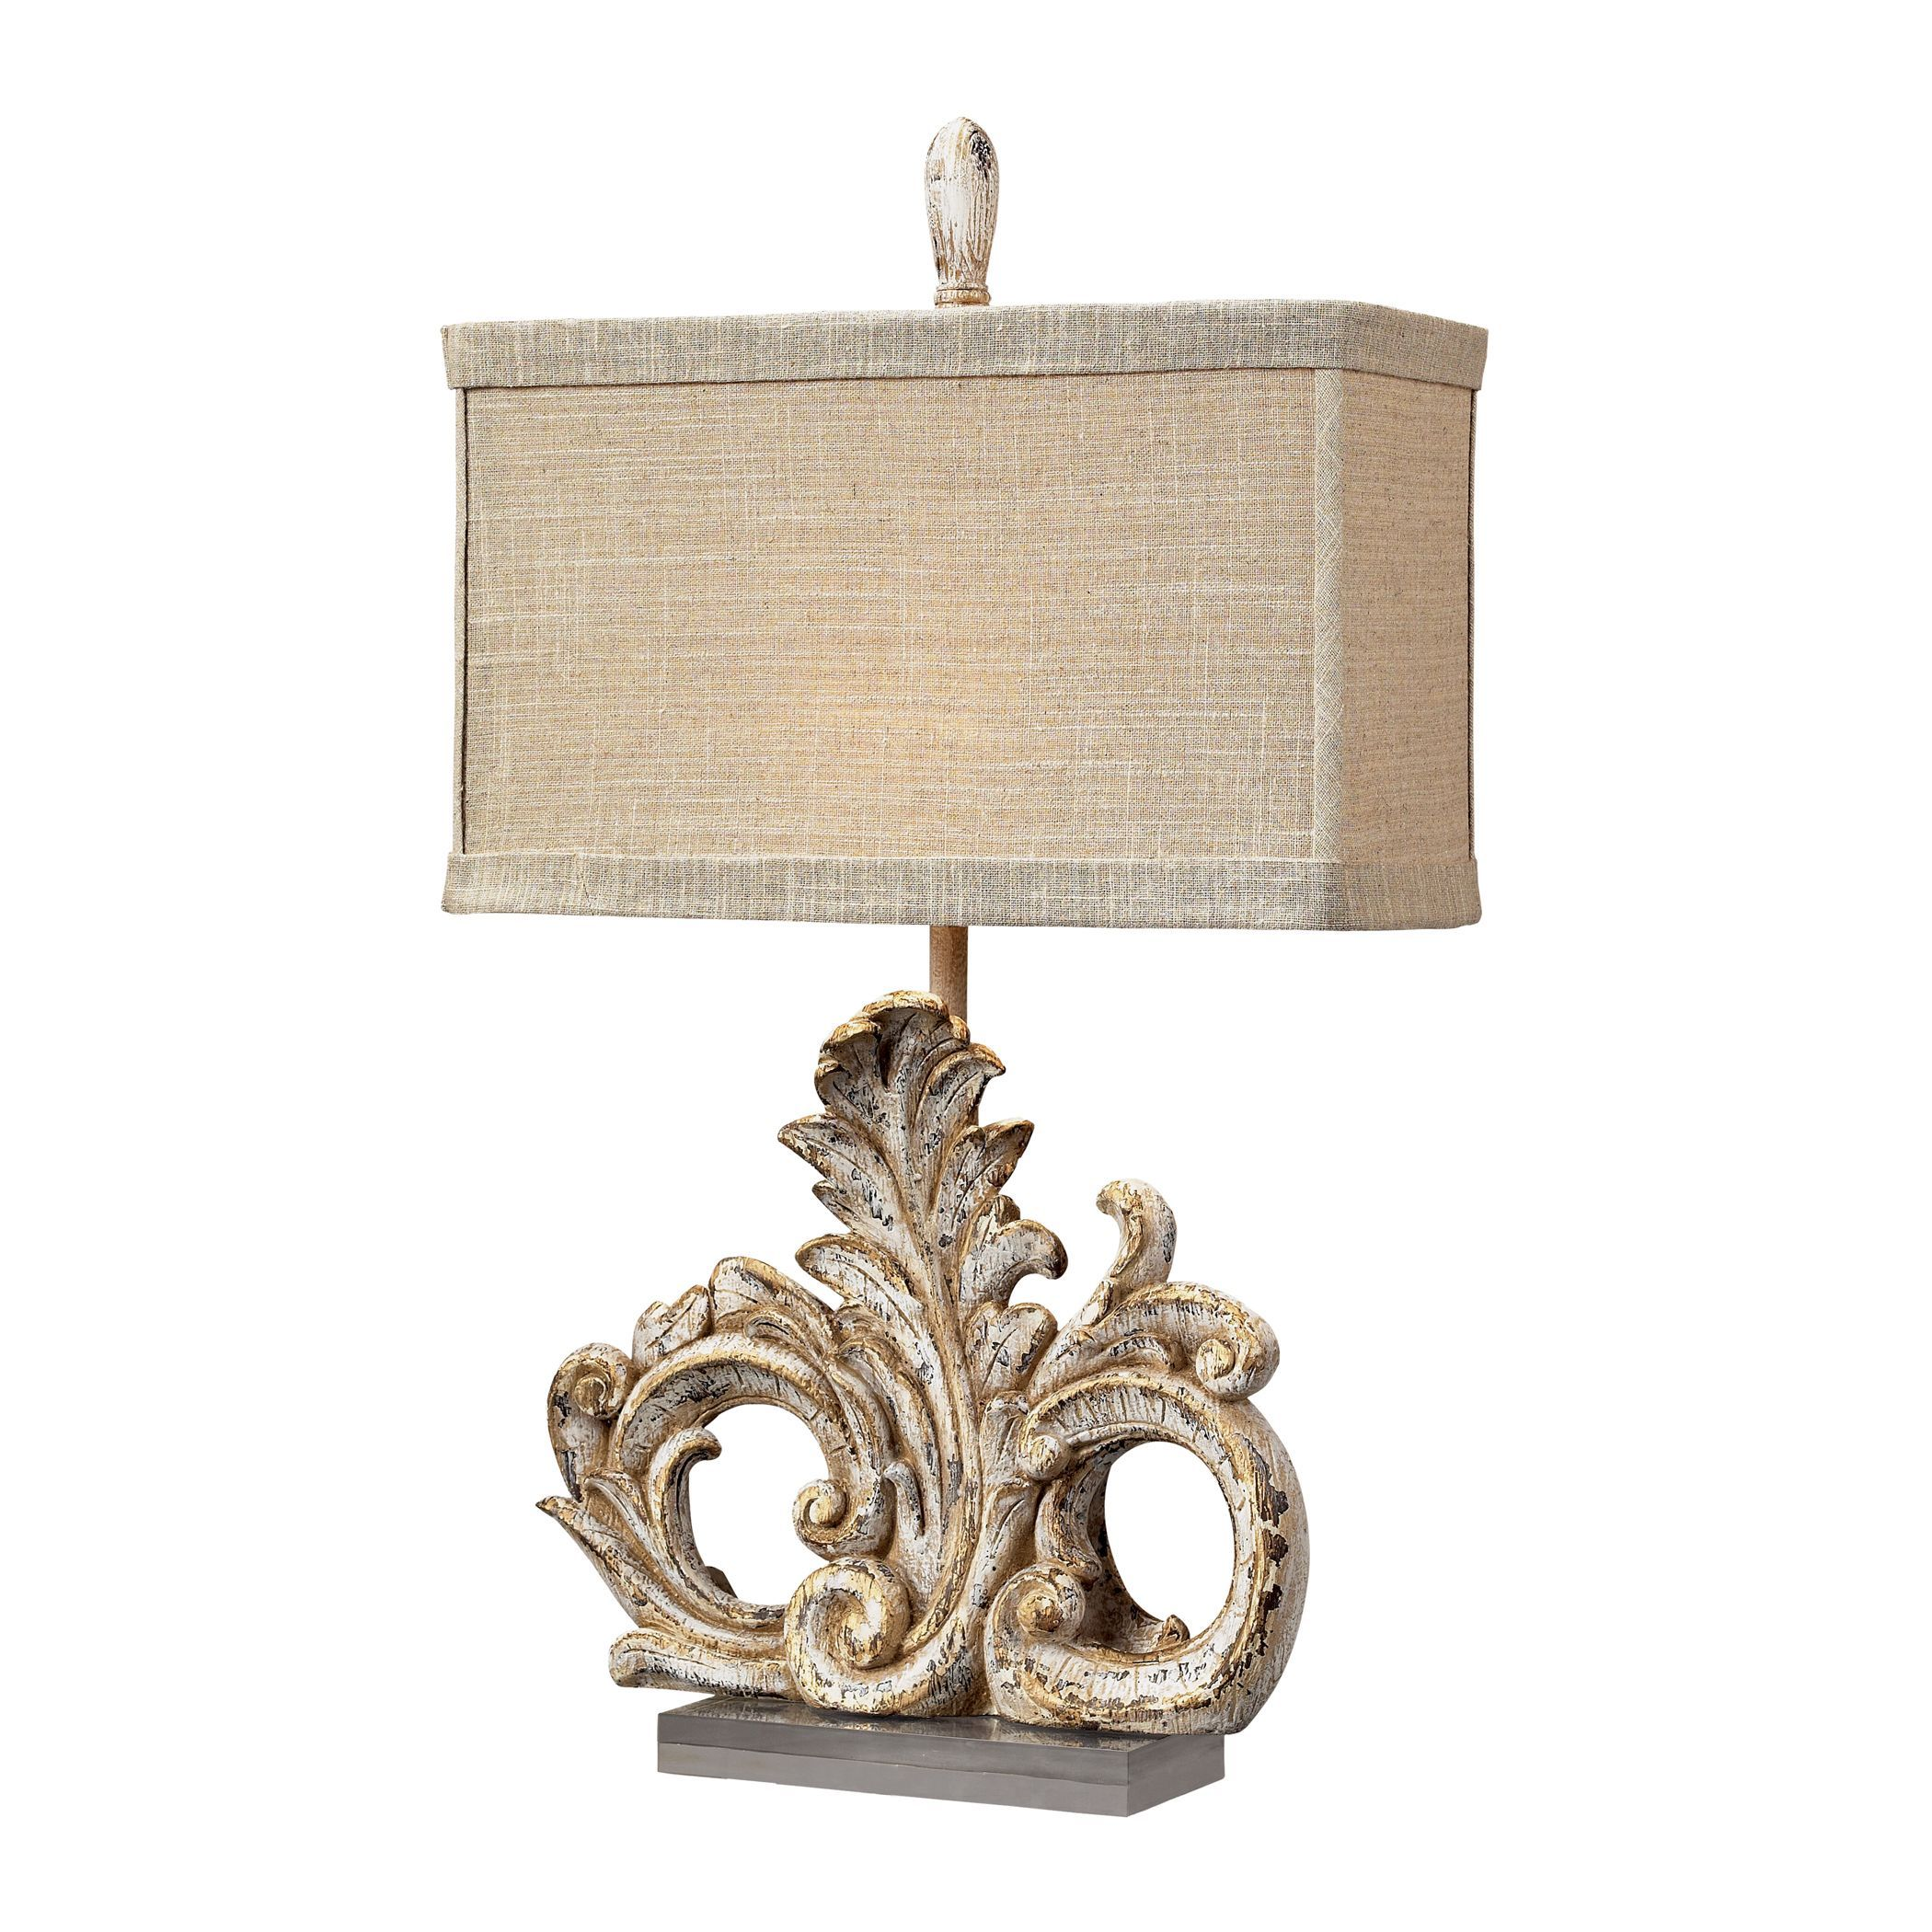 This Classy Table Lamp Features A Beautiful Presidente Finish, Complemented  By A Sand Colored